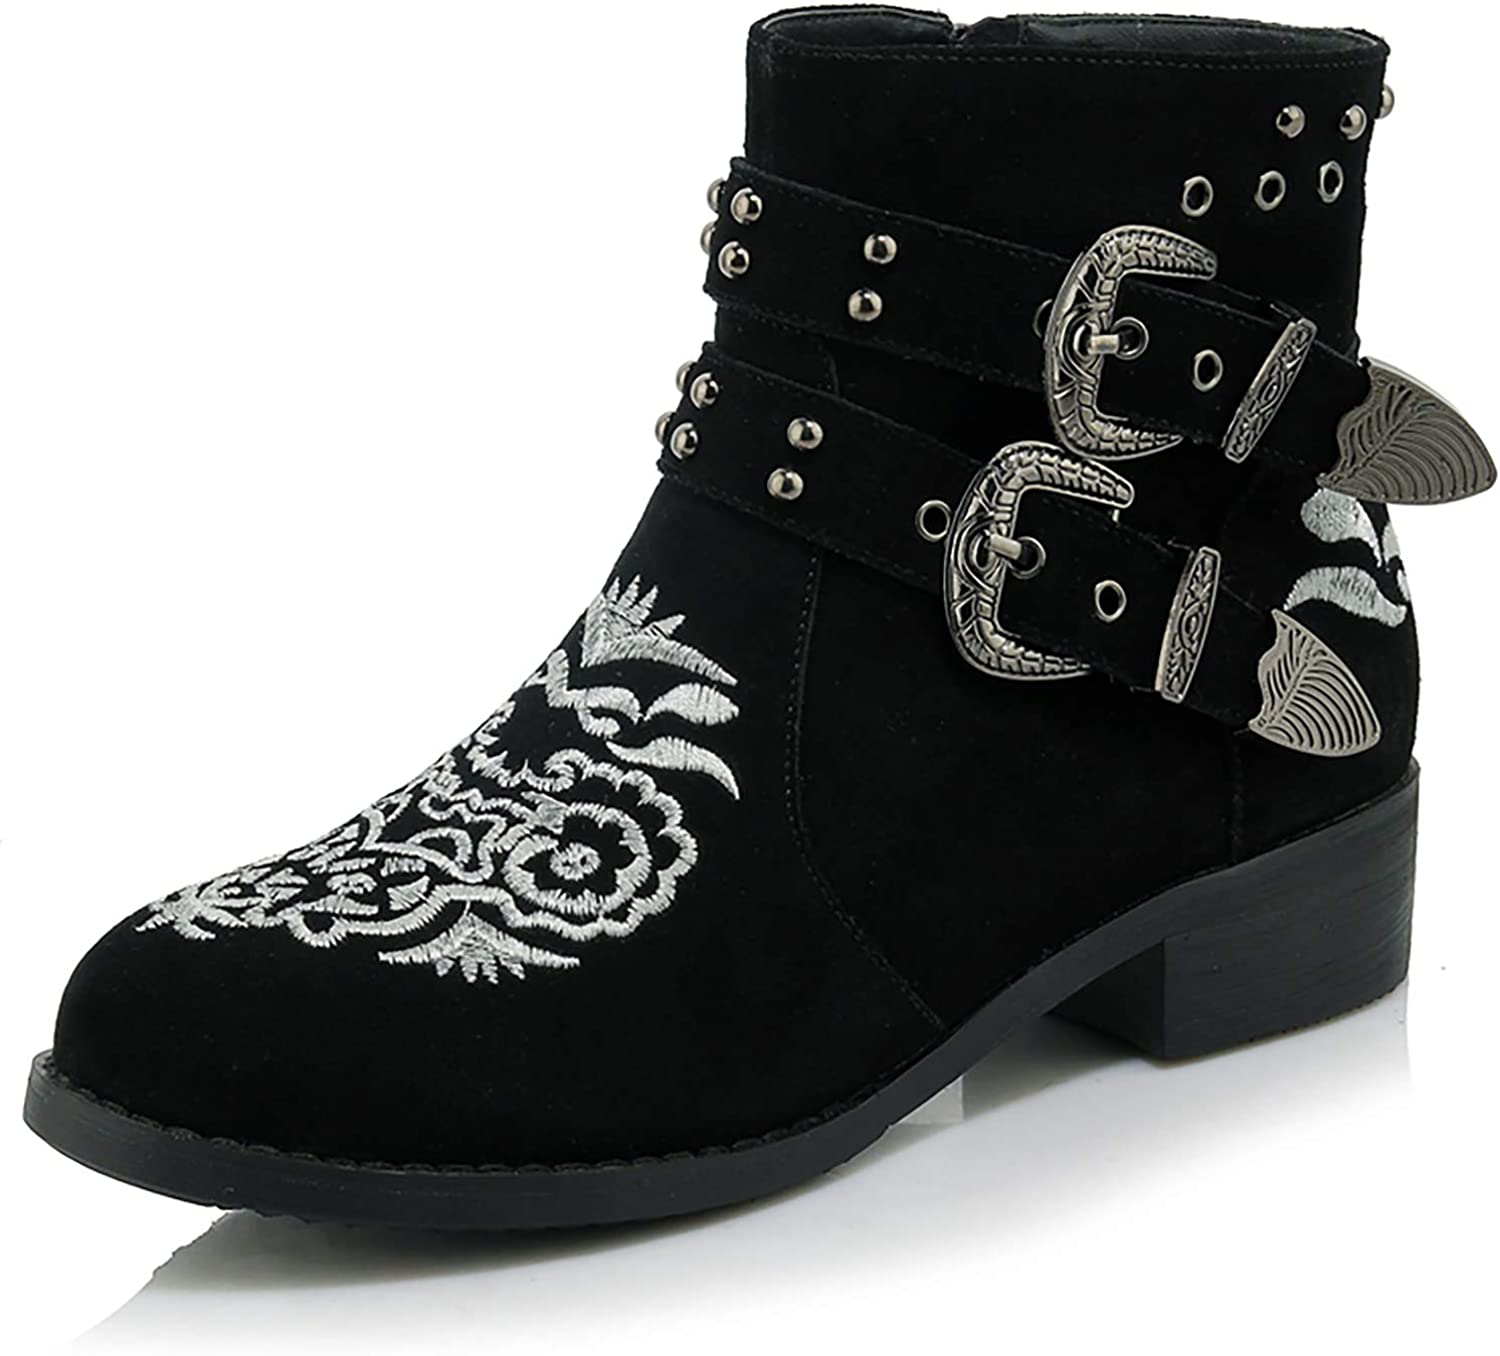 HEETIST Women's Floral Embroidery Ankle Boots with Buckle Side Zipper Chunky Block Heel Fashion Booties